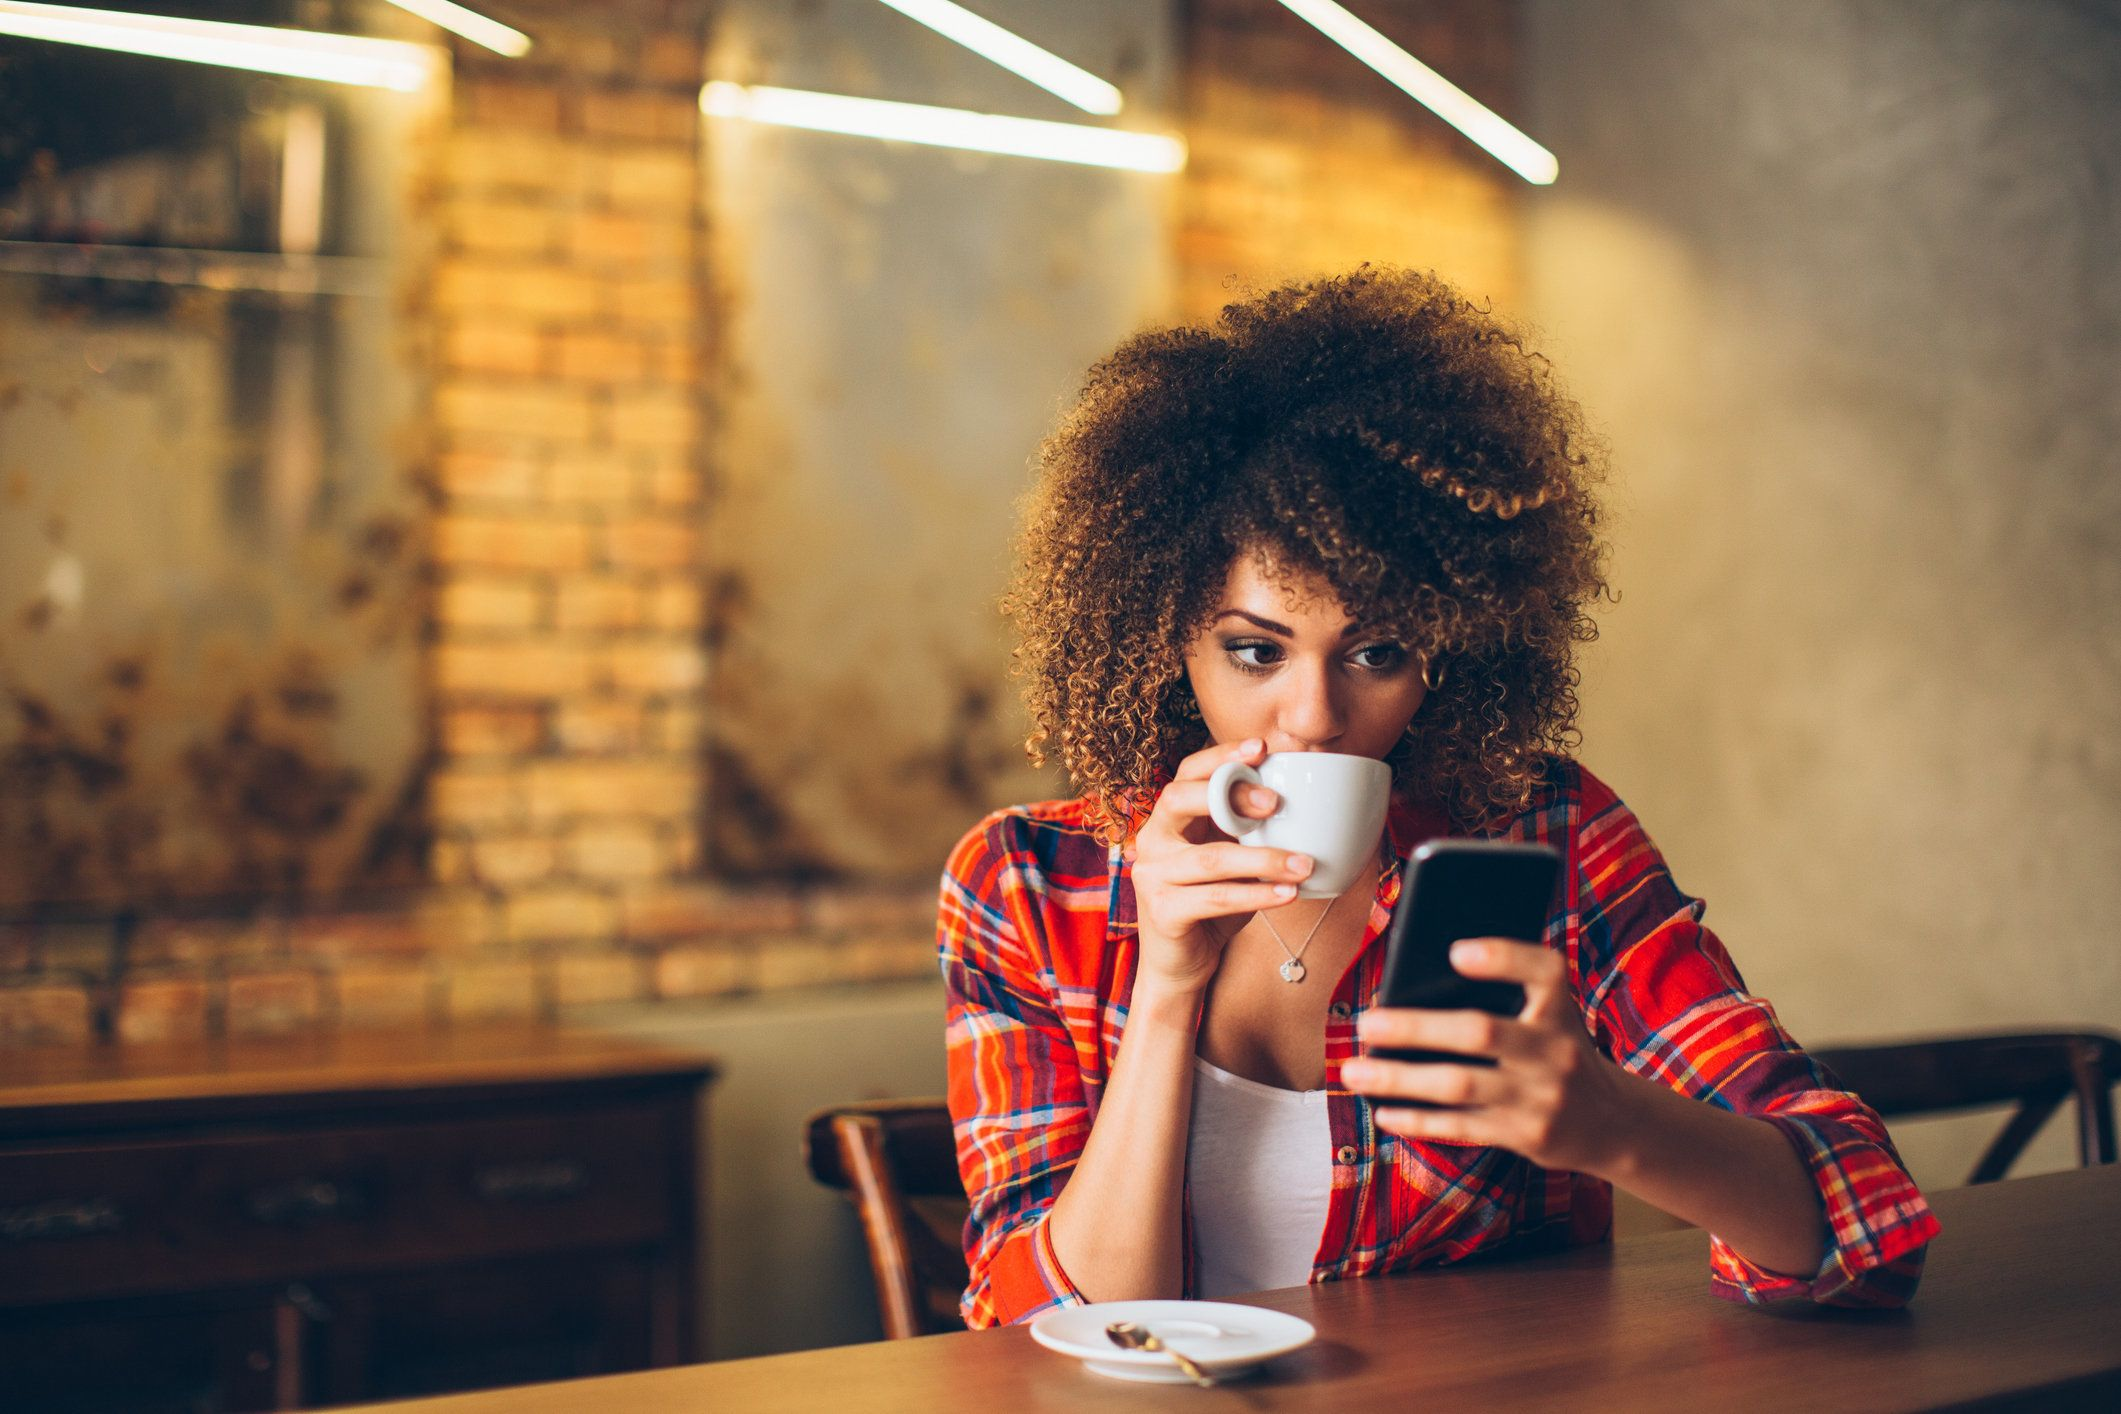 Social Media Is Increasing Loneliness Among Adults, Say